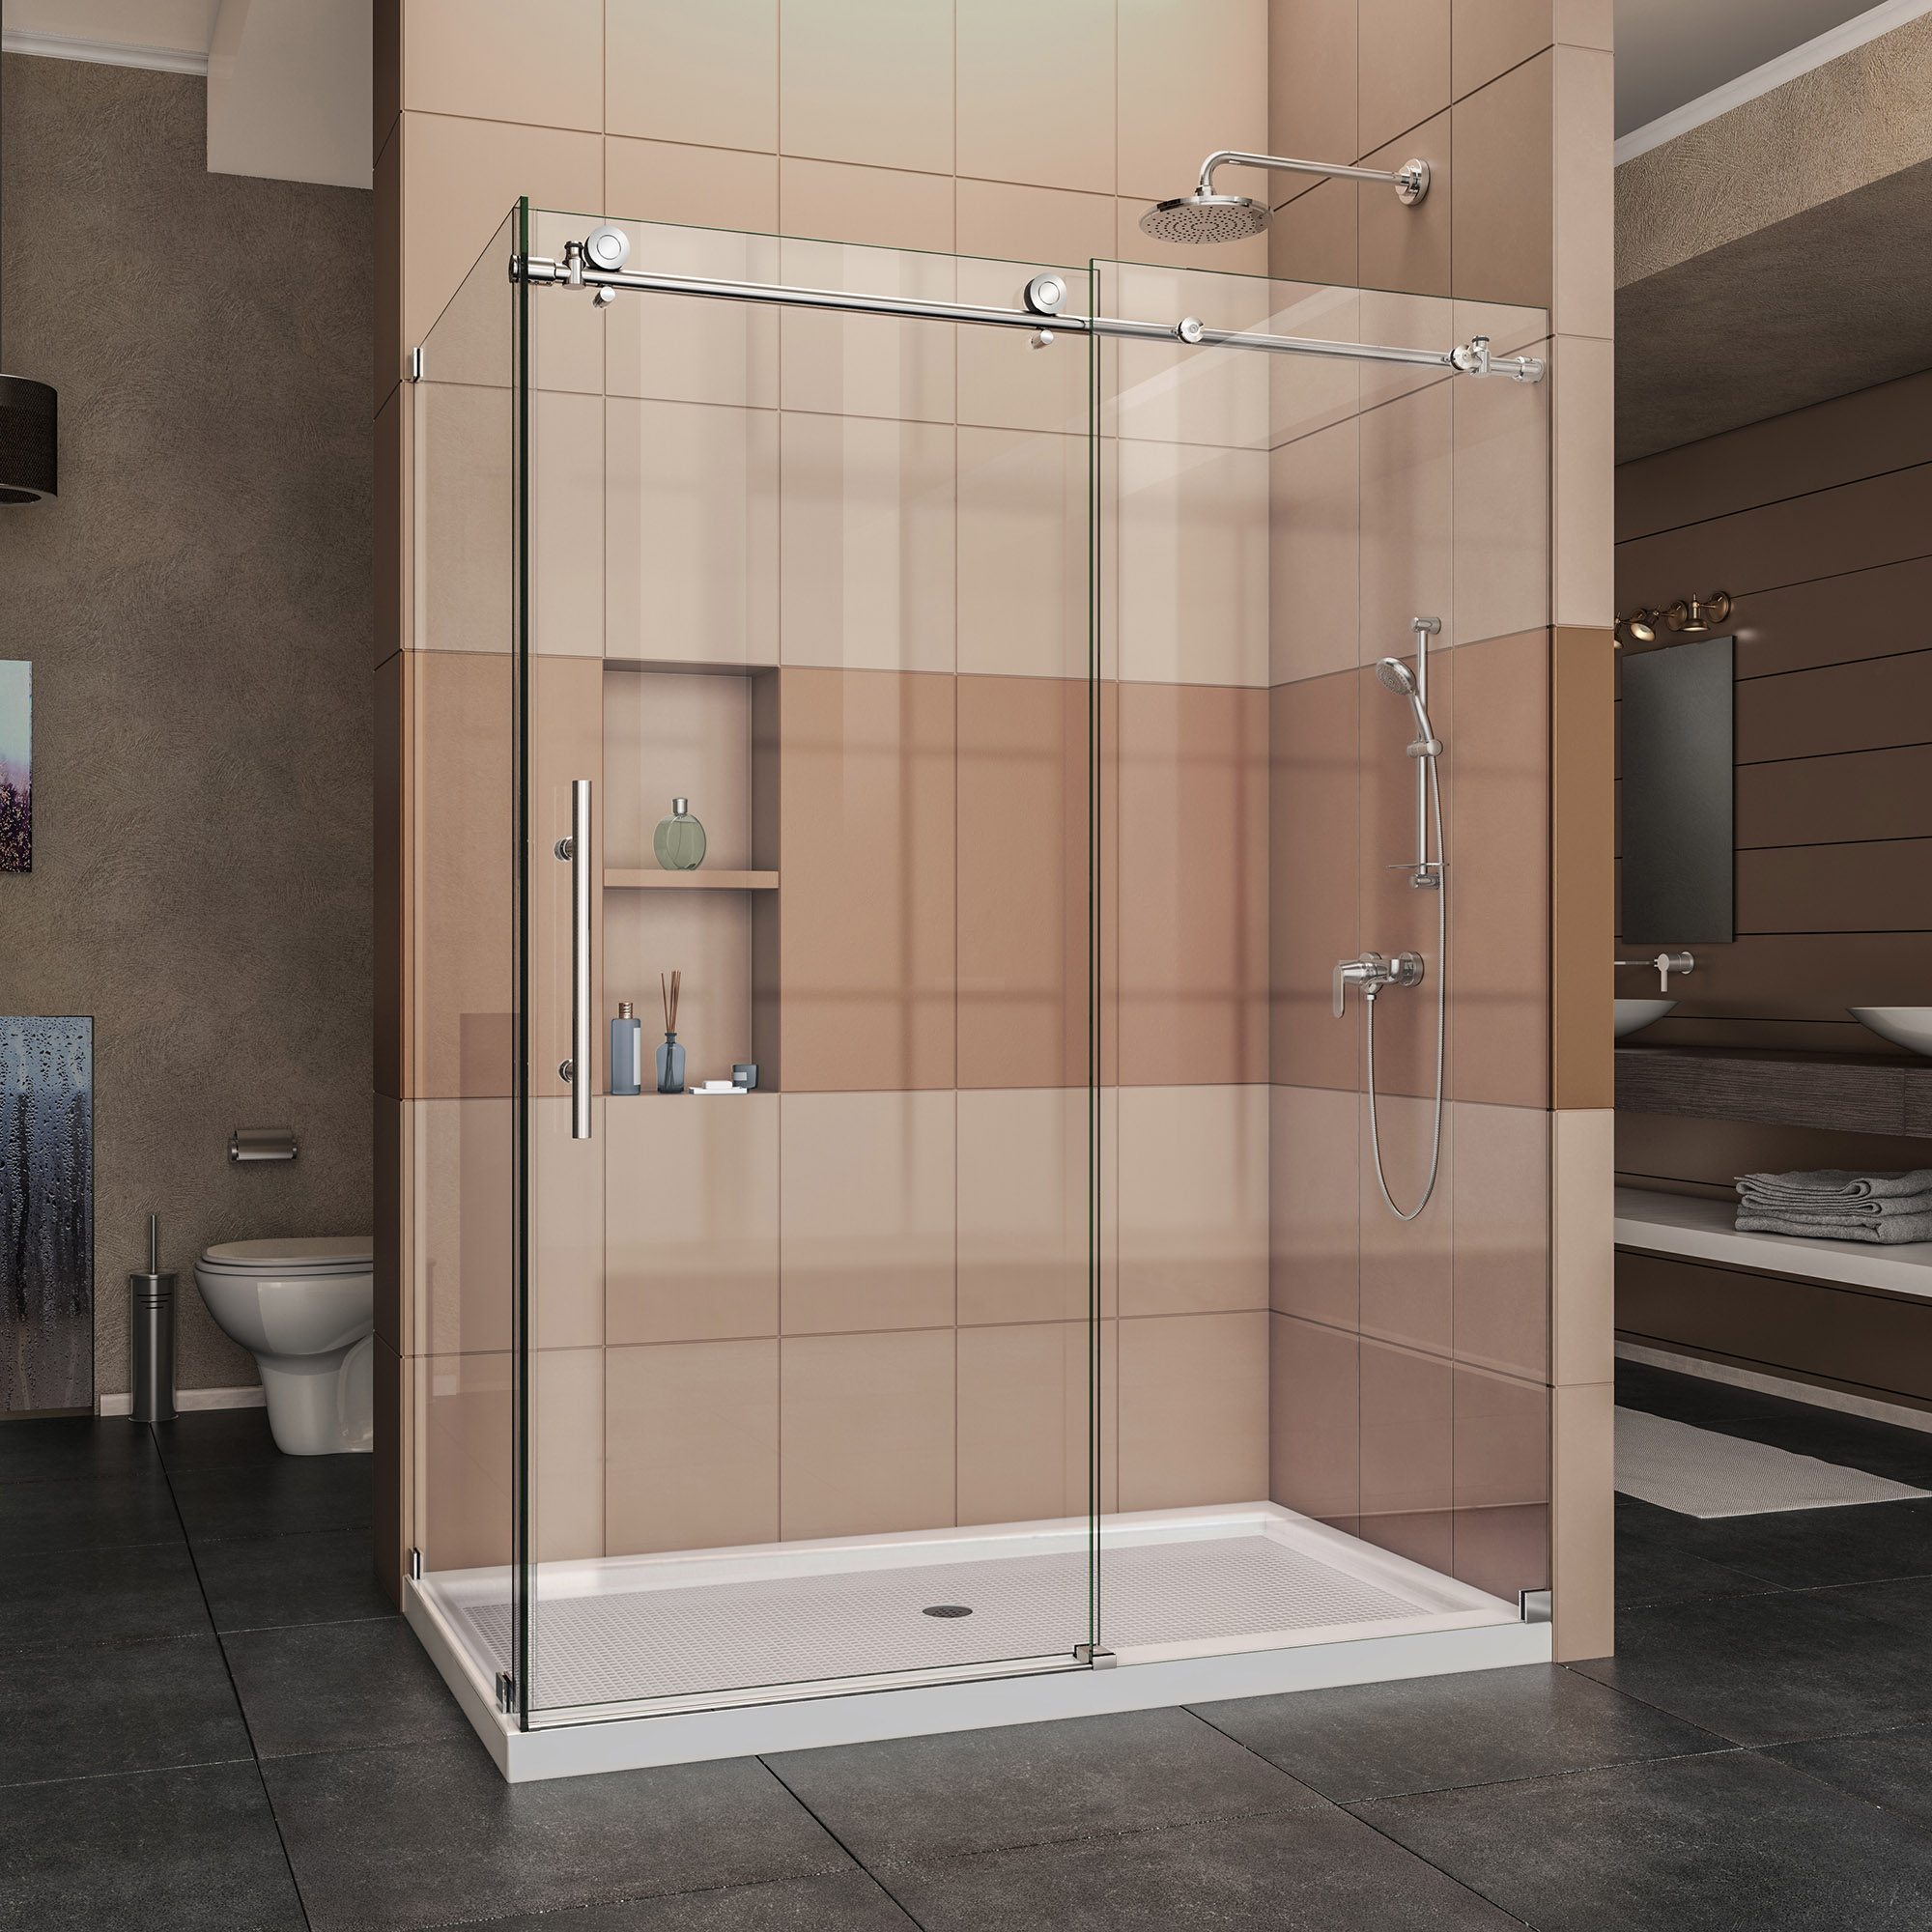 DreamLine Enigma-X 34 1/2 in. D x 60 3/8 in. W x 76 in. H Fully Frameless Sliding Shower Enclosure in Polished Stainless Steel